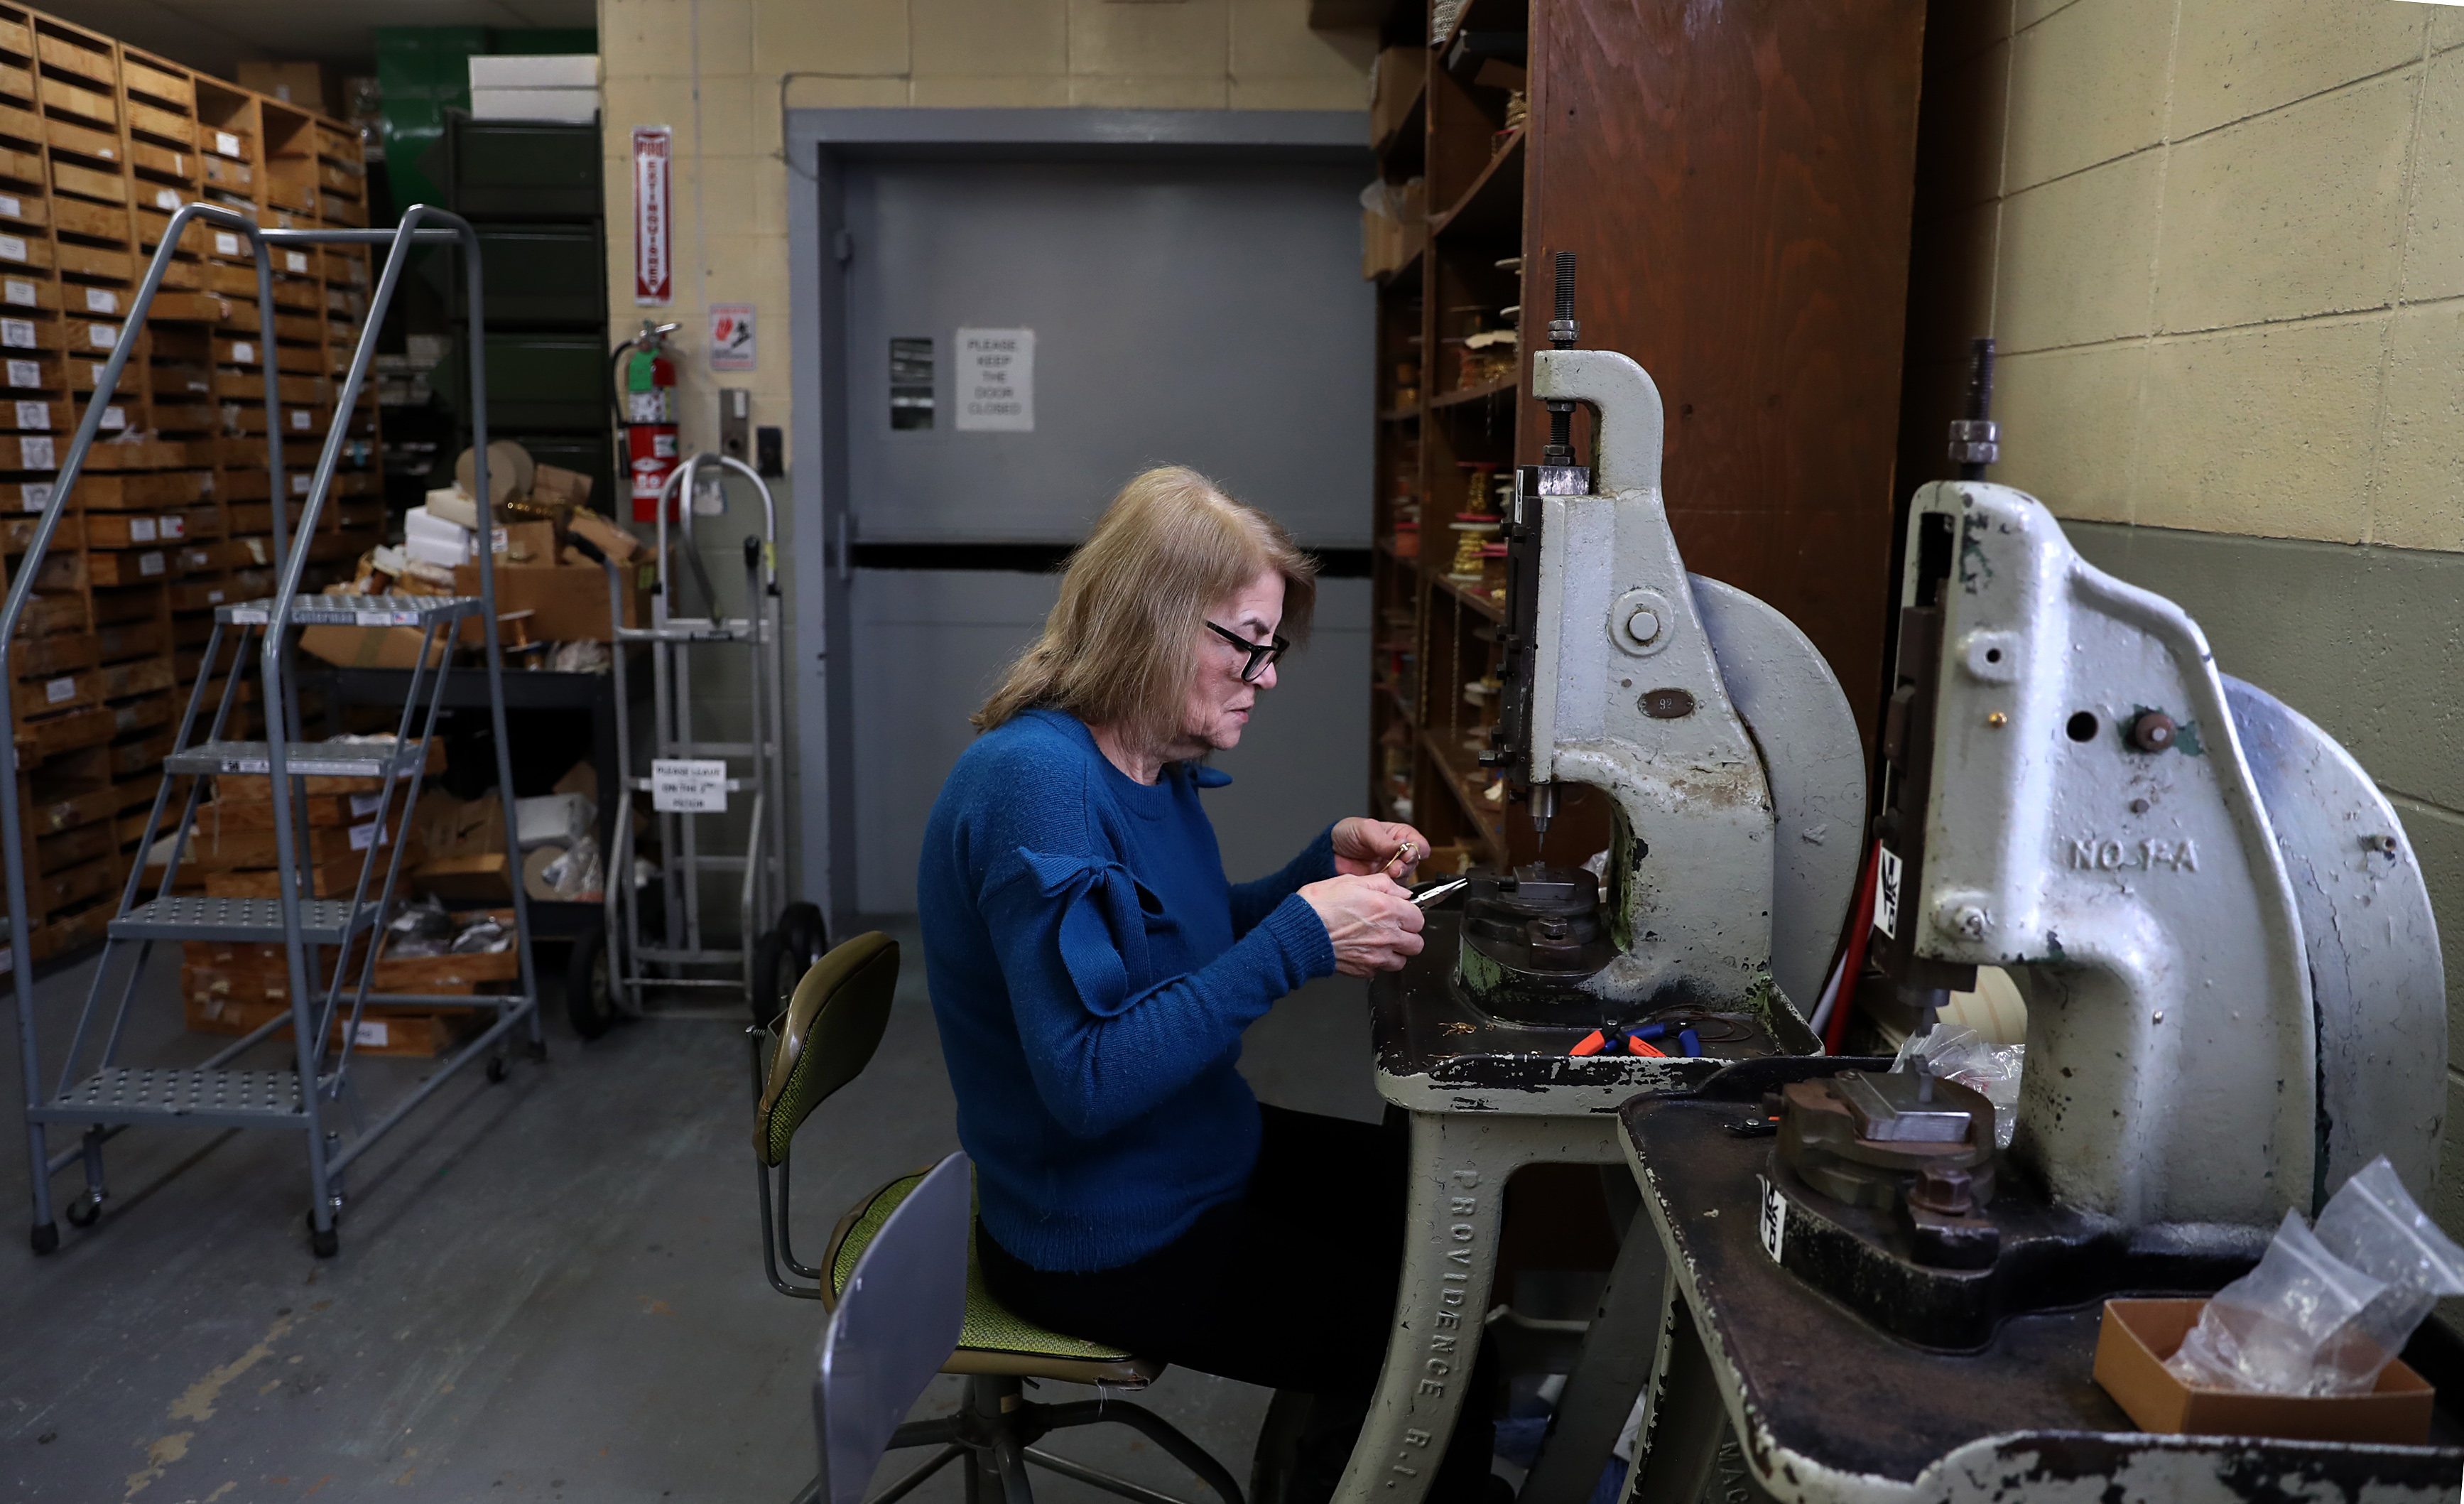 Virginia Gasparian, an employee, uses a foot press to make jewelry at Air & Anchor in Cranston, Rhode Island.